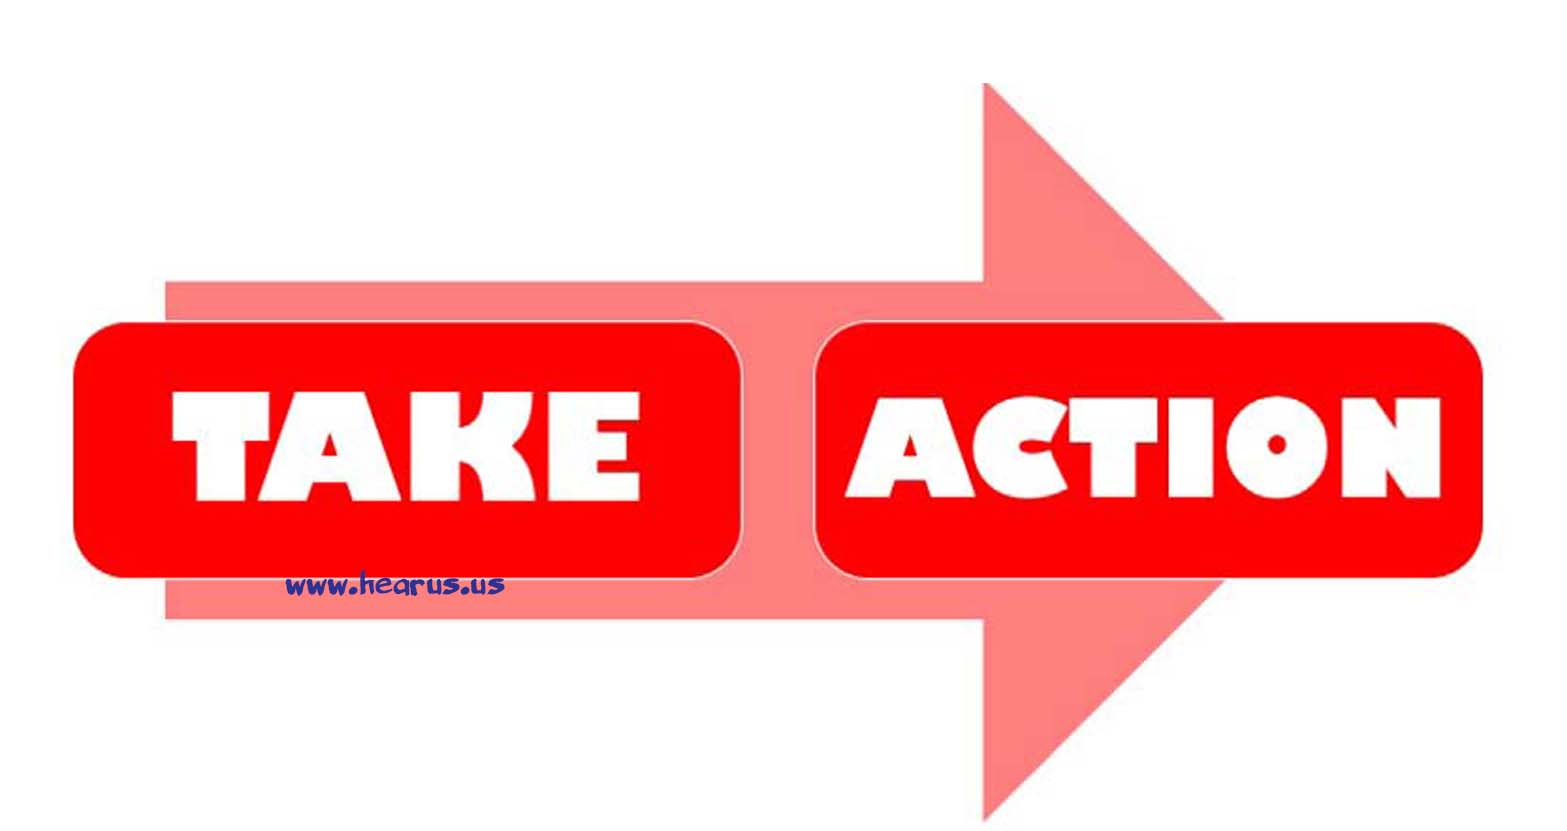 Take Action Arrow LI2